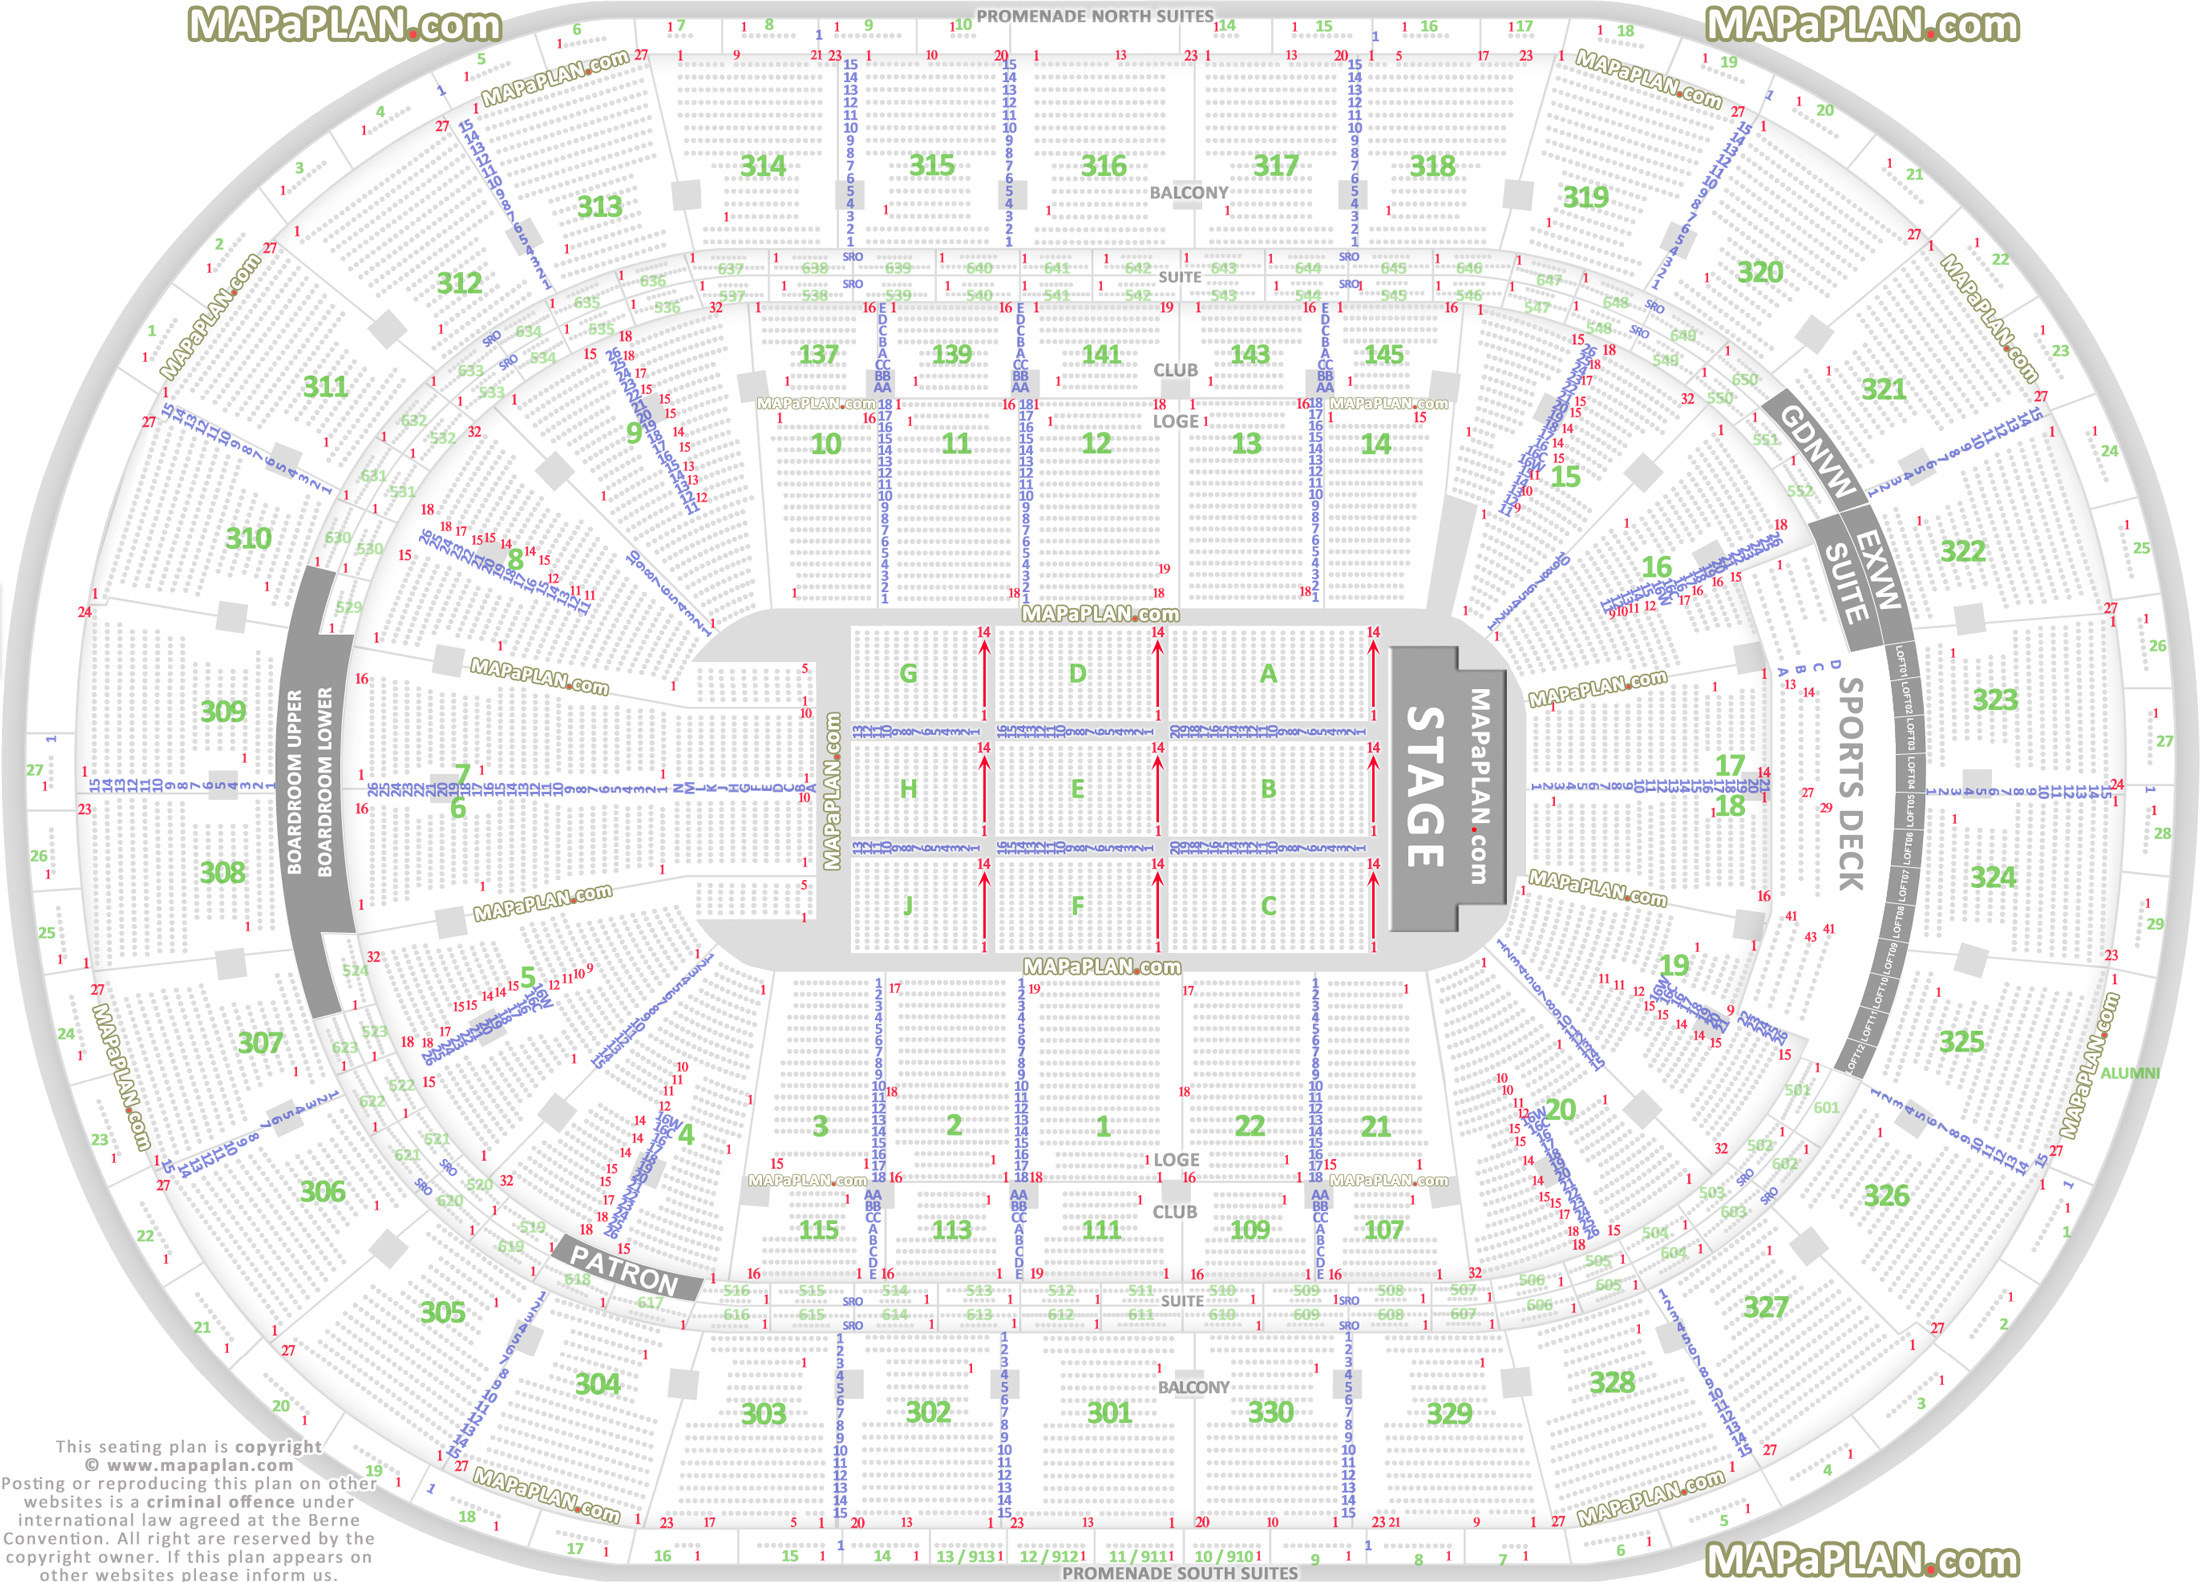 Td Garden Seating Chart Ed Sheeran